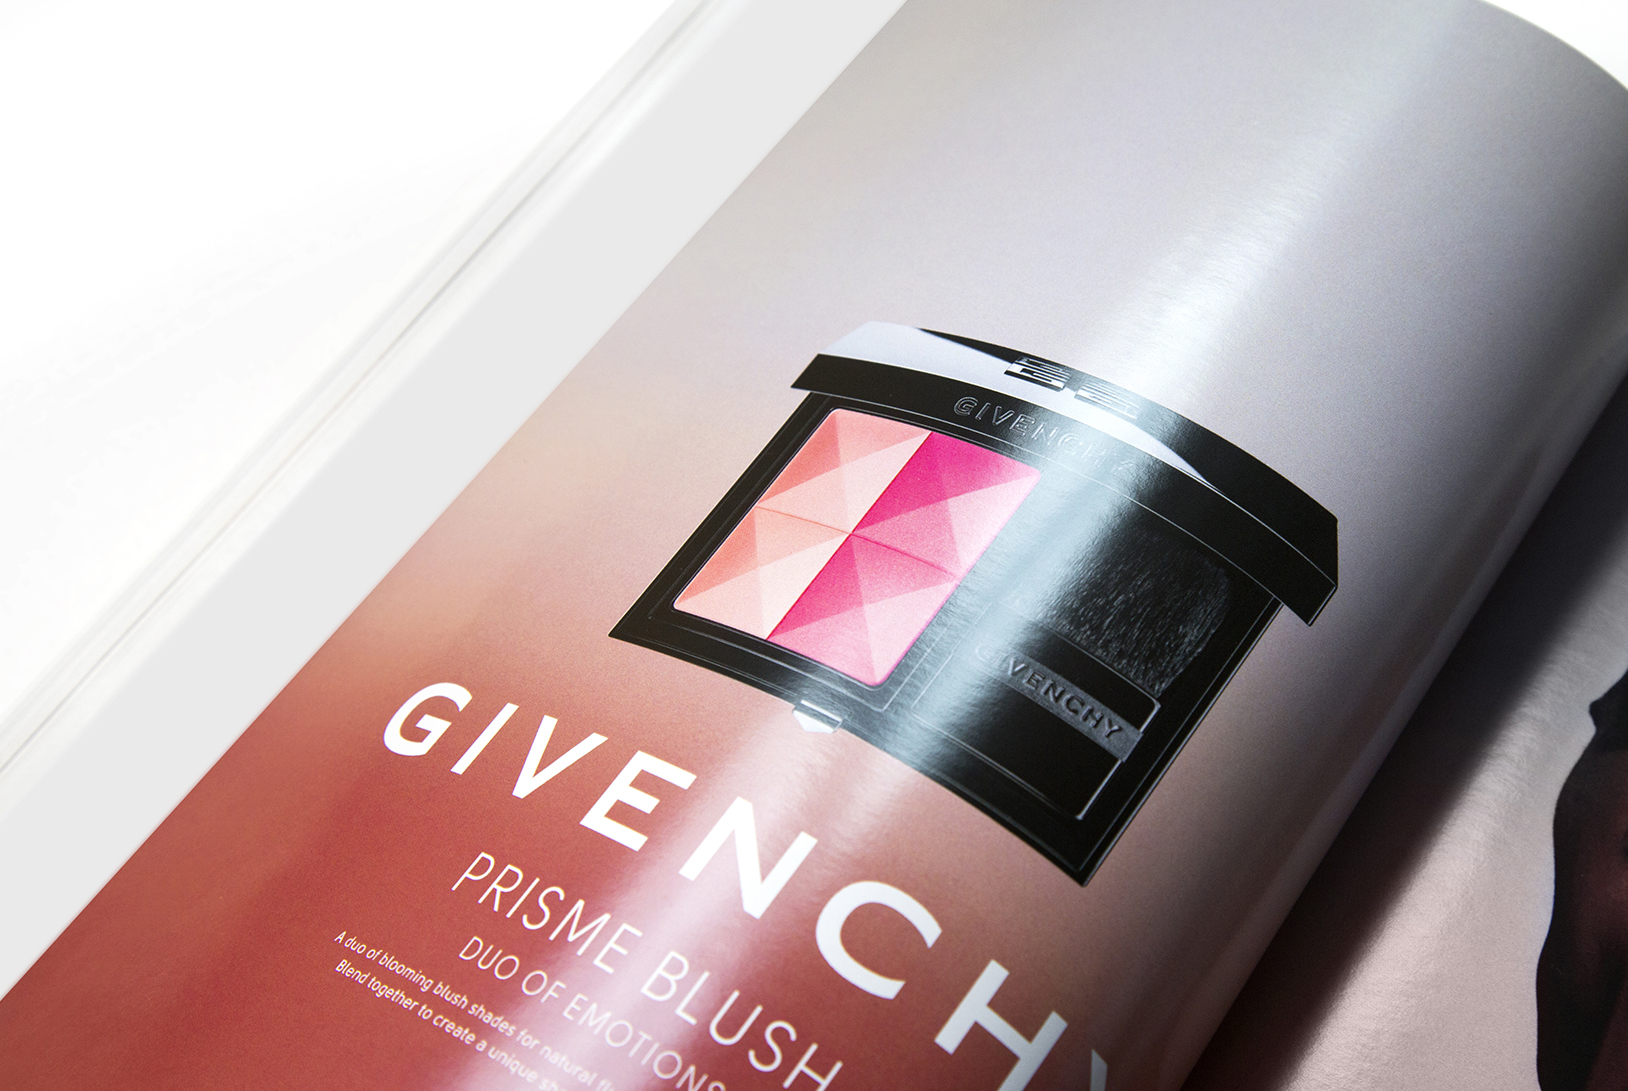 CARLA COSTE / ART DIRECTOR GIVENCHY – Powders